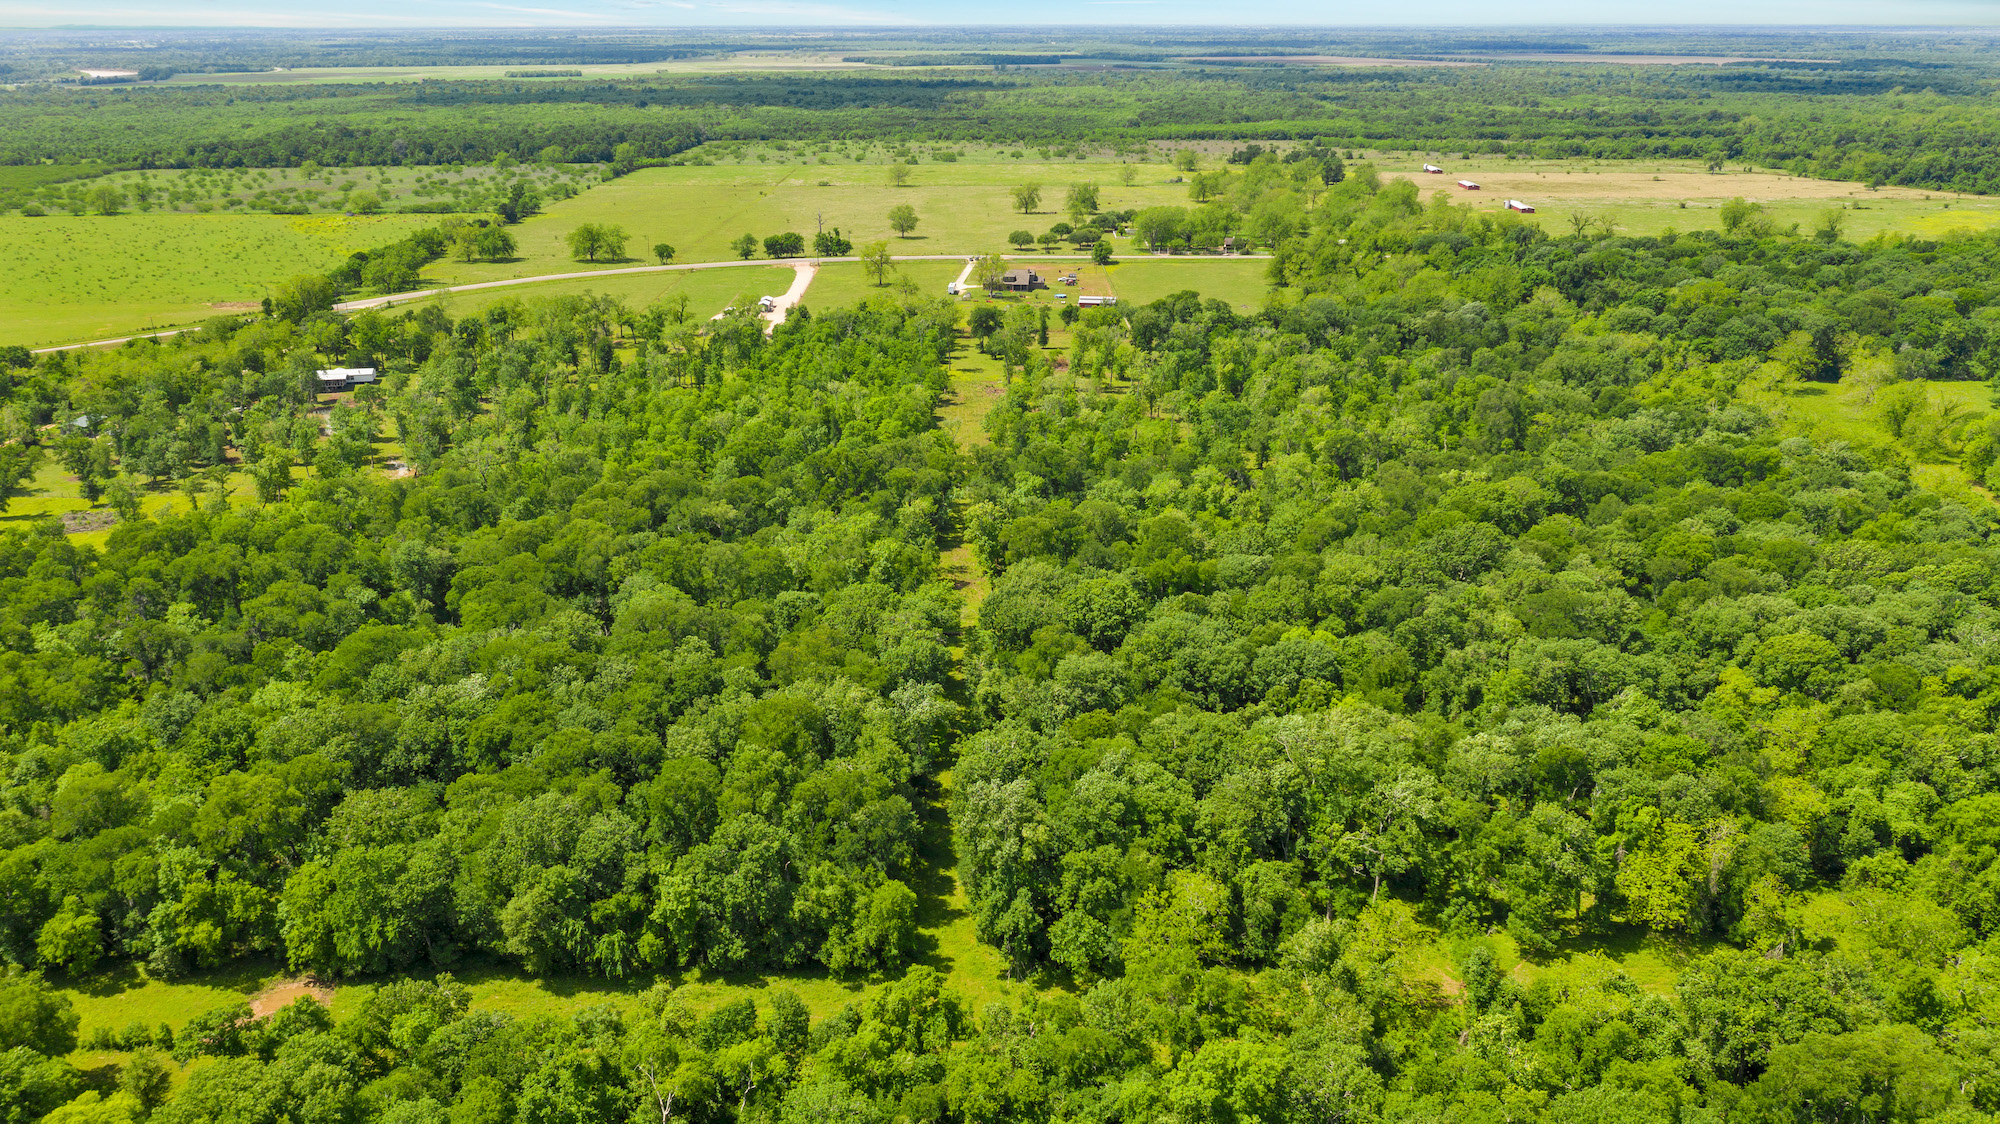 Custom Country Home with Acreage in Sealy - Image 8 of 46